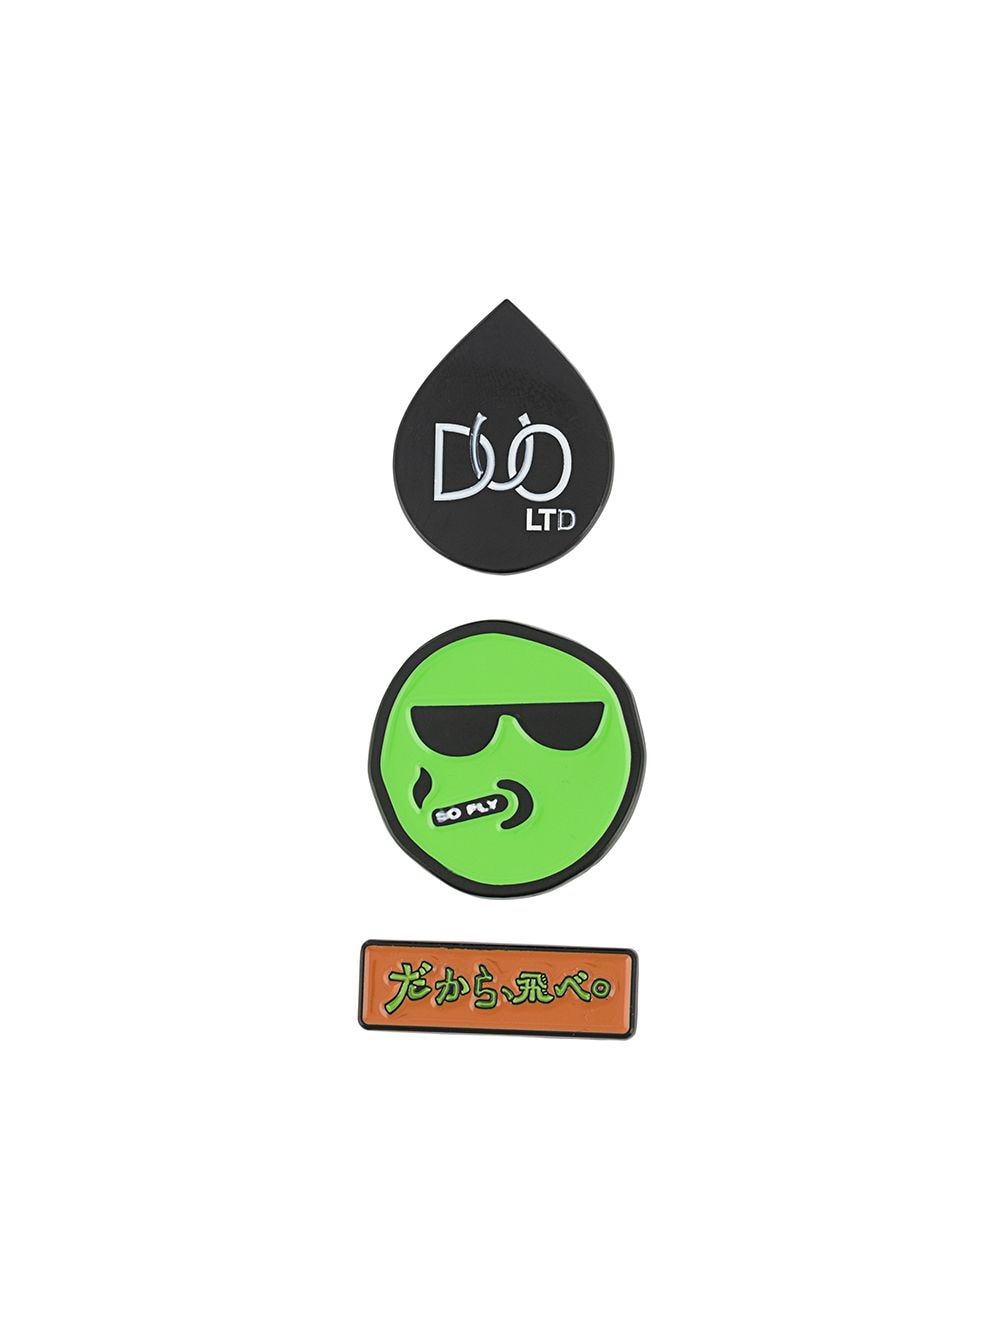 DUOltd Smiley pin set - Green von DUOltd